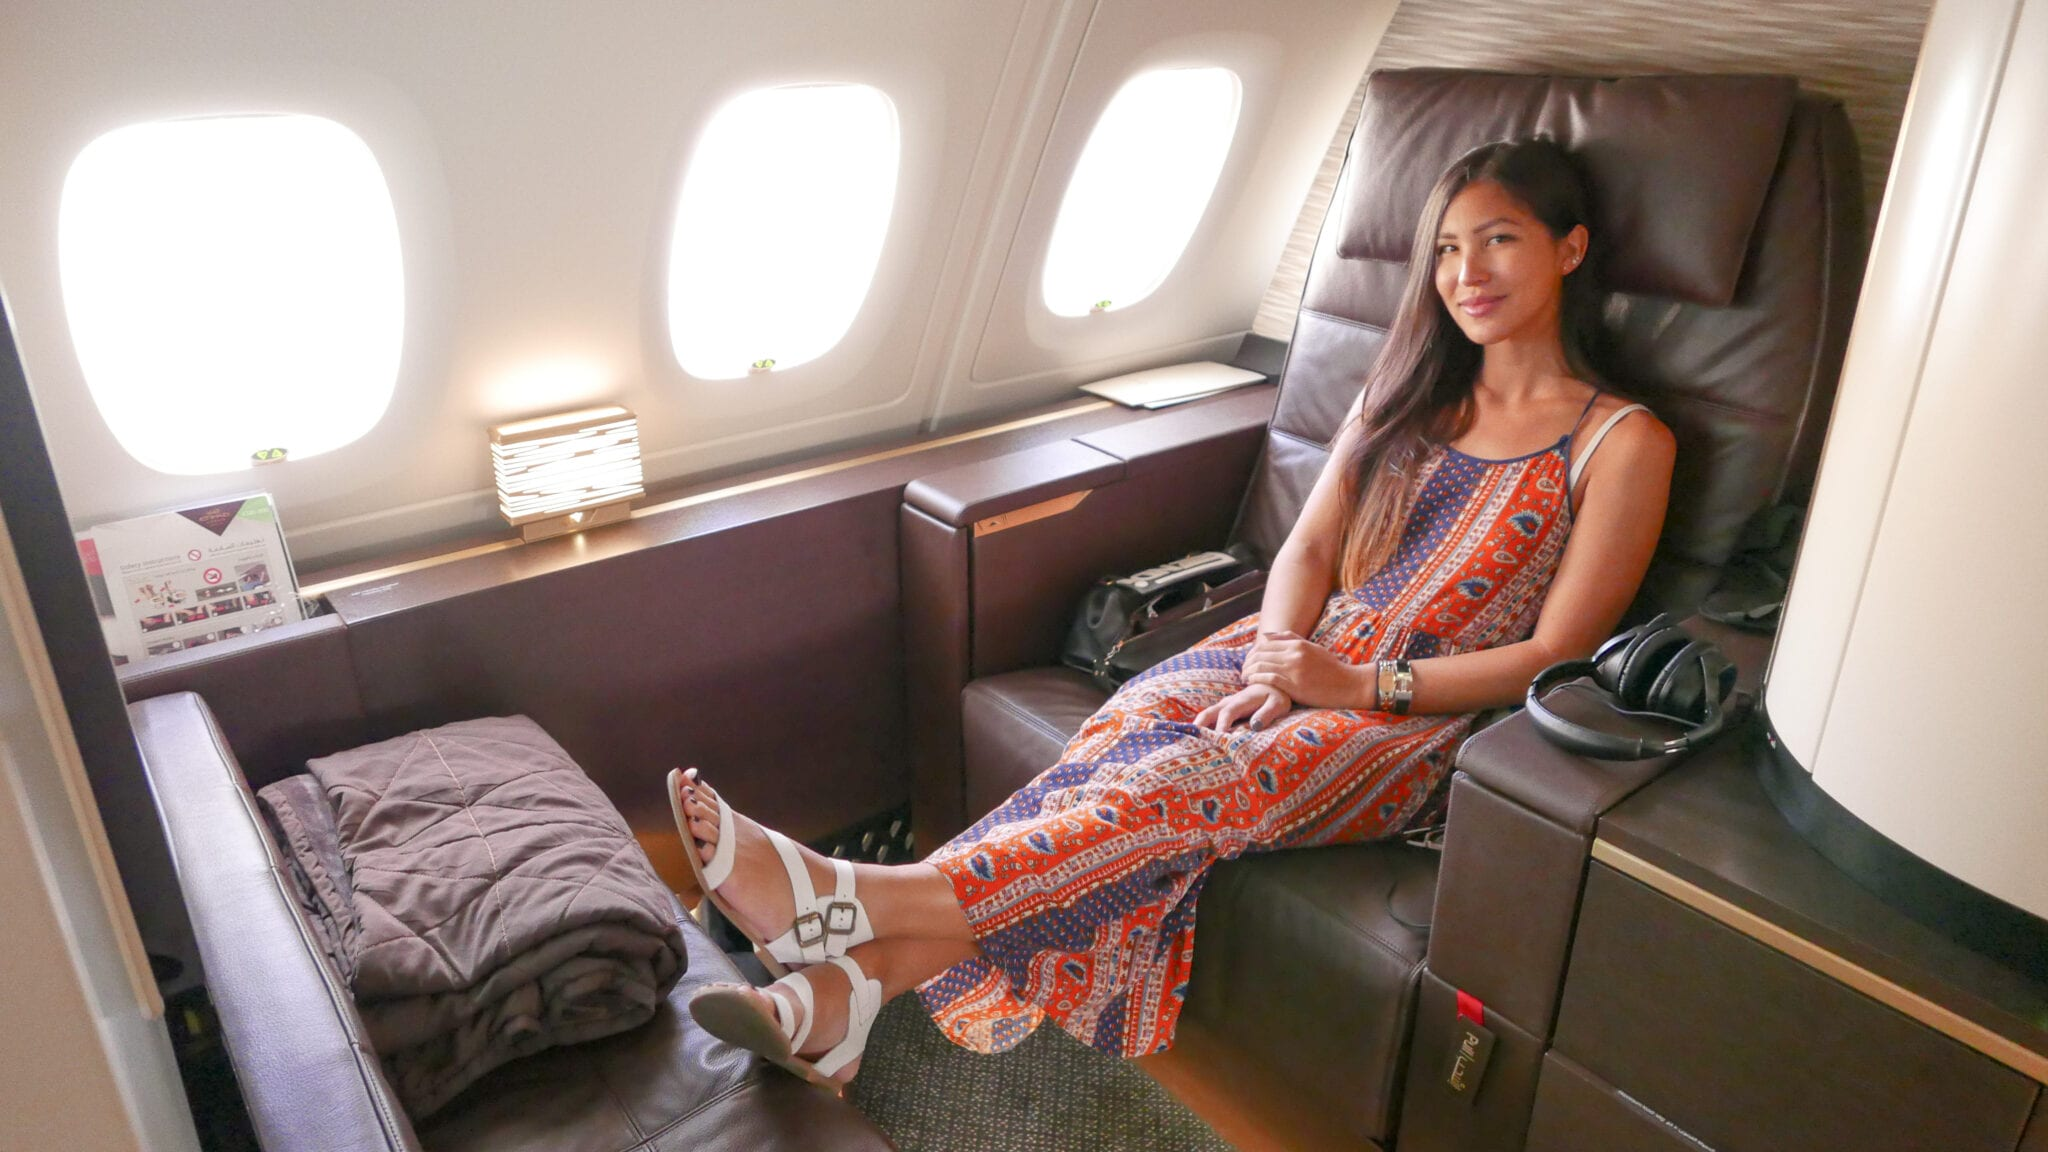 EY APTS 13 - SECOND REVIEW - Etihad : First Class Apartments - Abu Dhabi AUH to London LHR (A380)